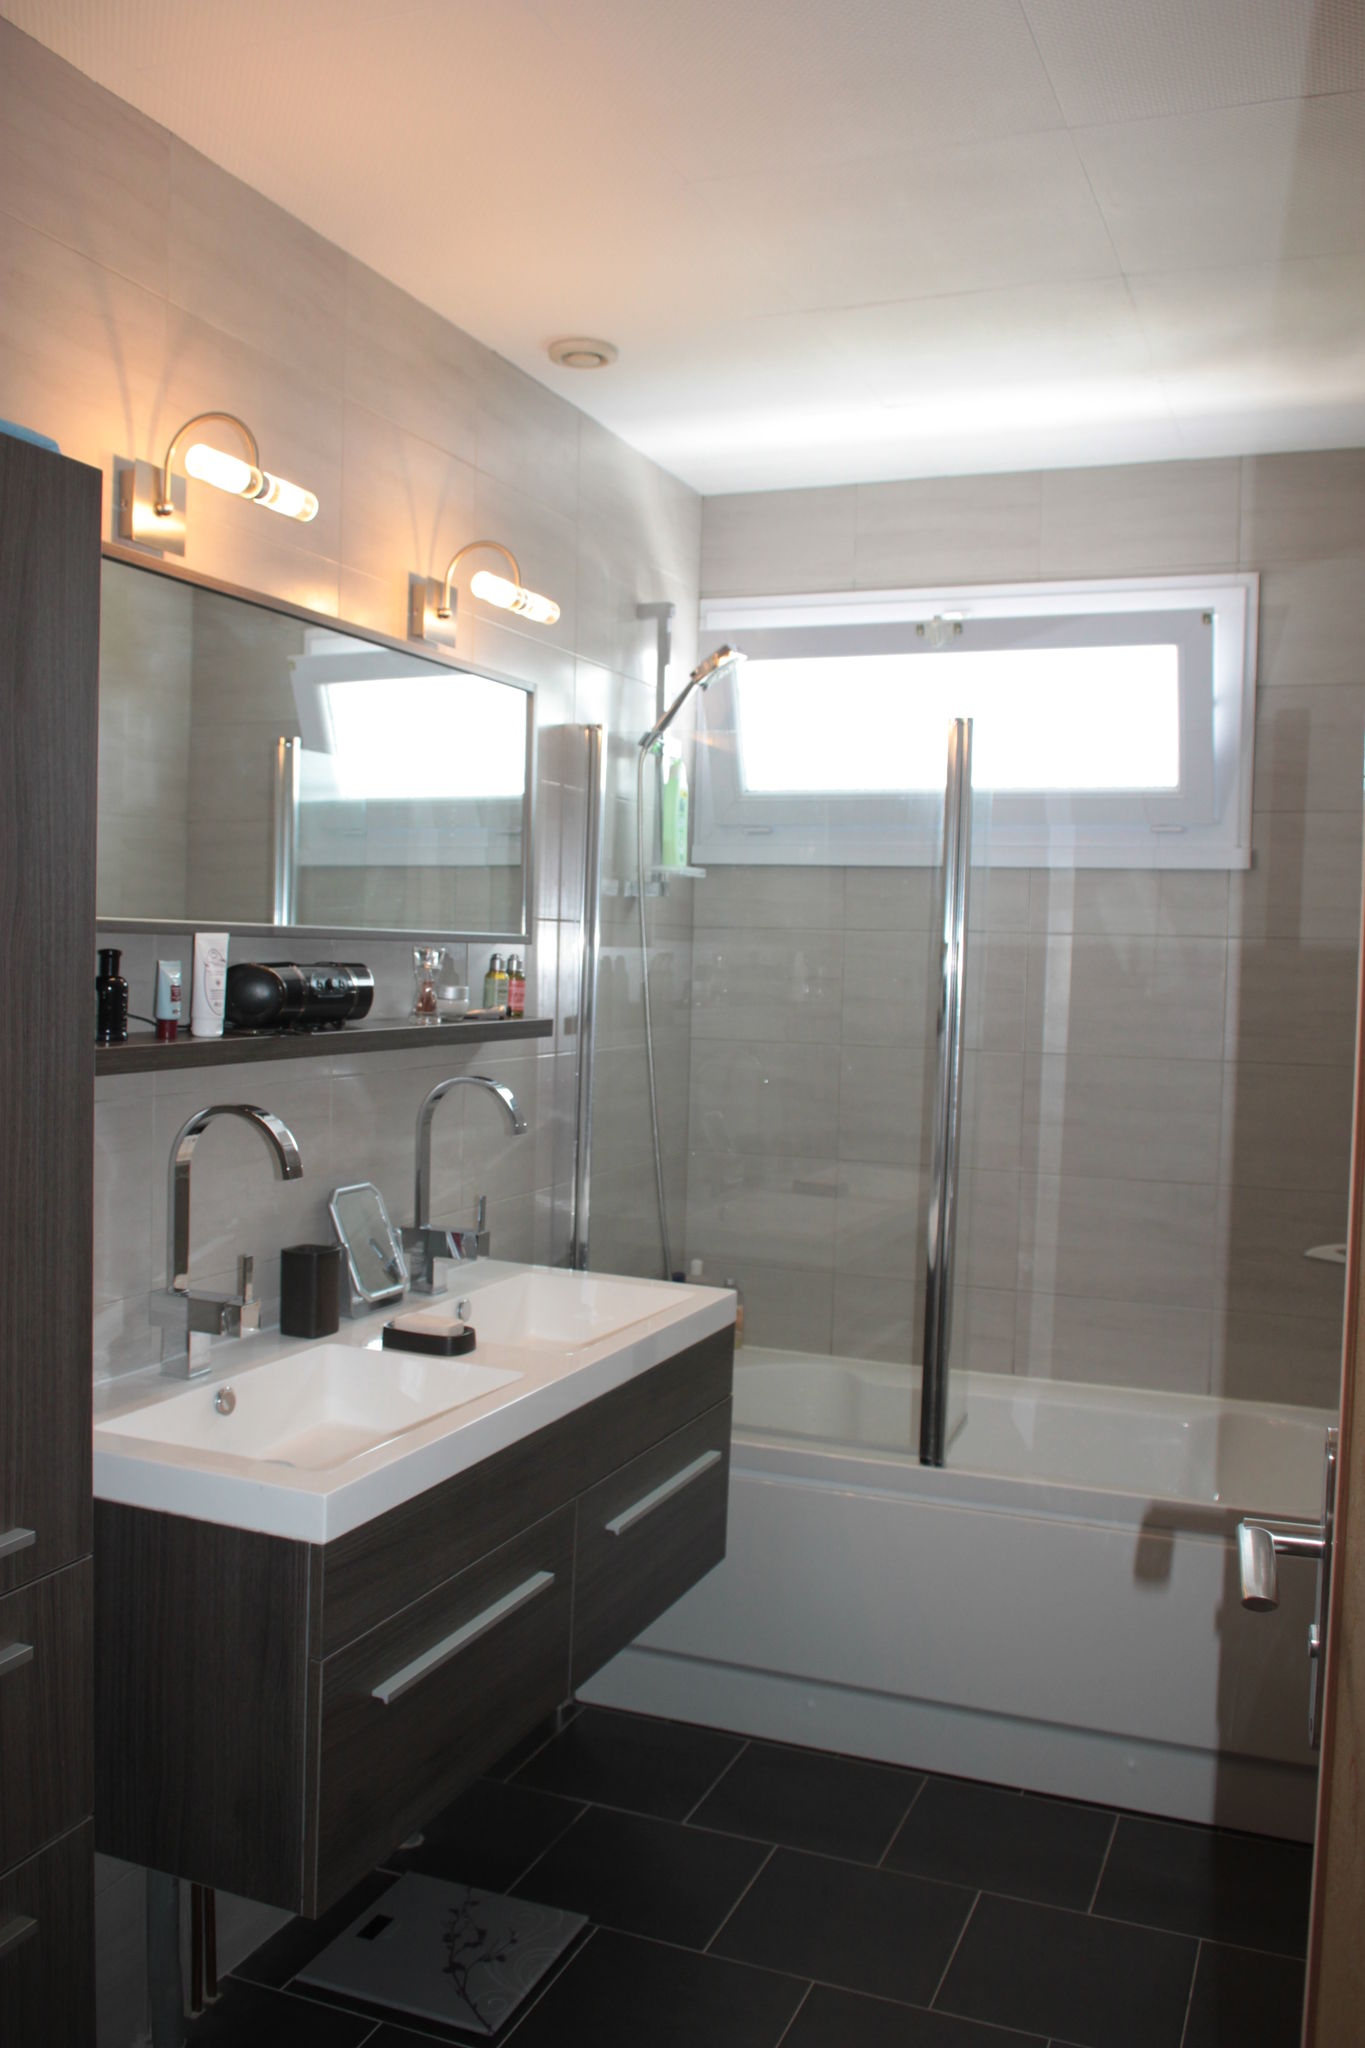 Salle de bain gris clair + double vasque suspendu - Album photos ...